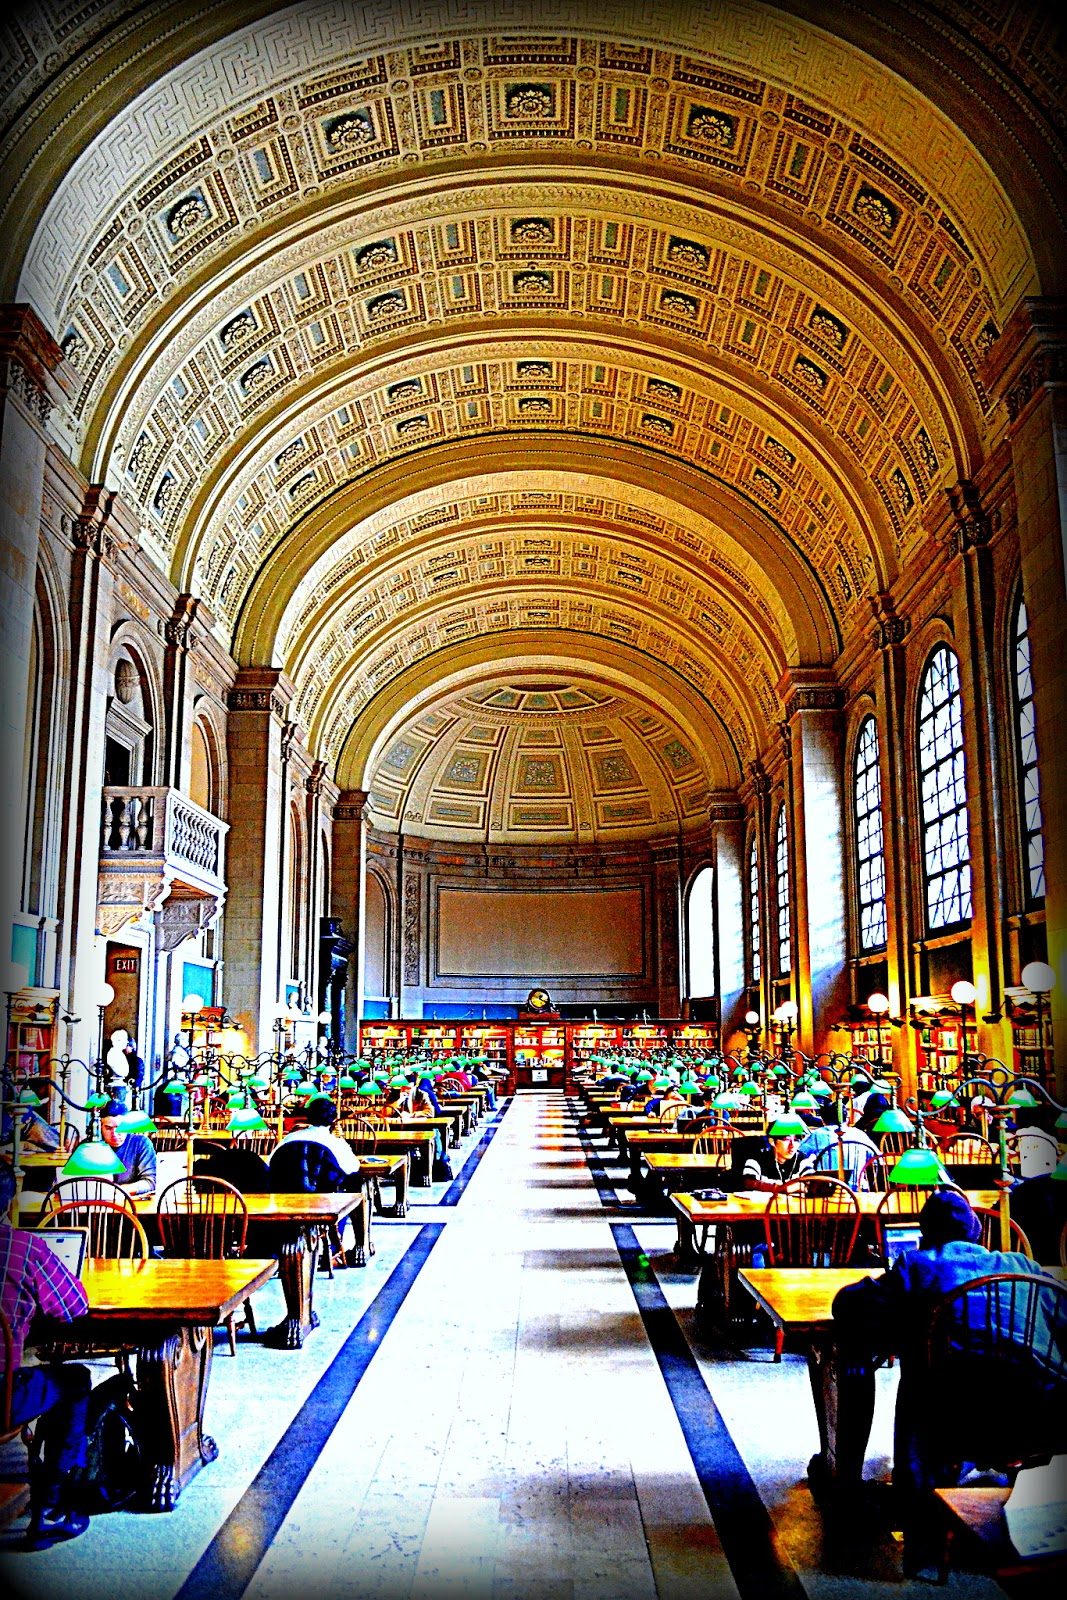 bates hall, bpl.org, boston public library, boston, reading room, reading